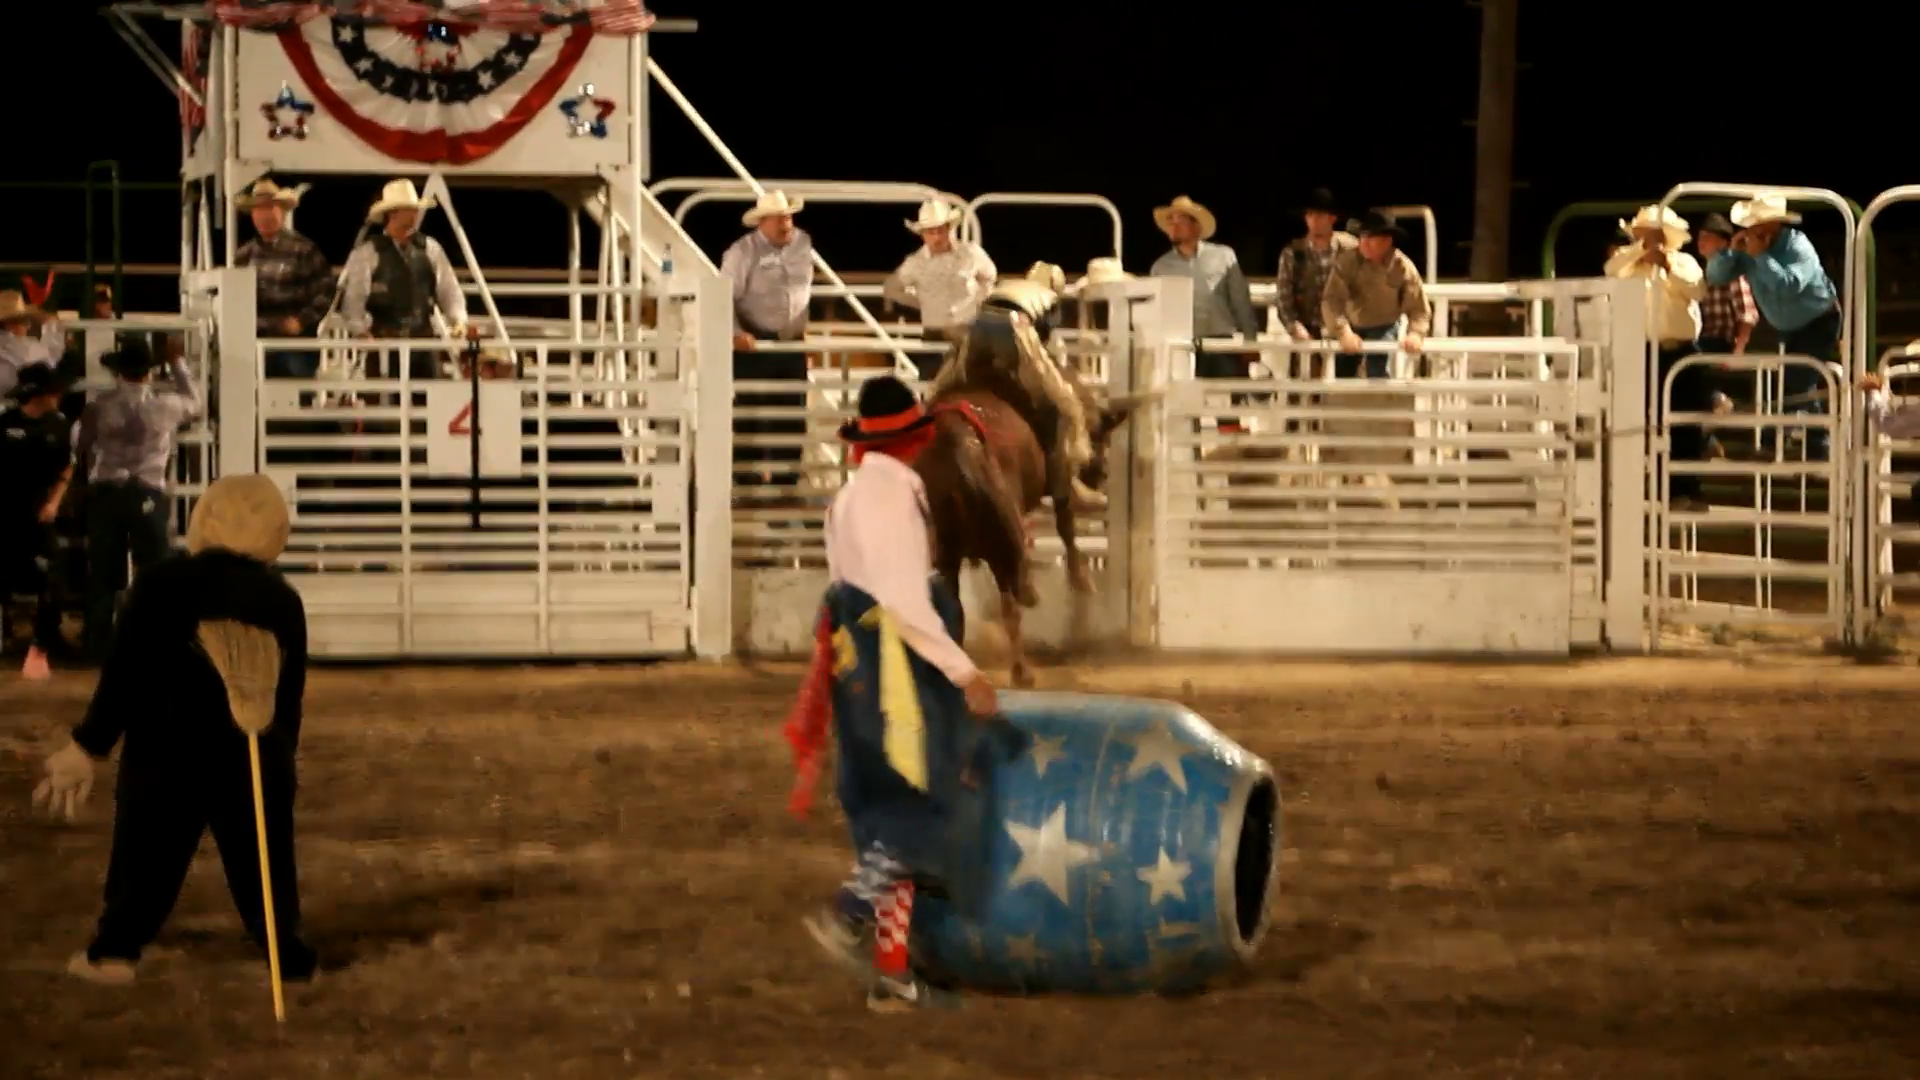 Bull rider stuck on bull at rodeo P HD 1002 Stock Video Footage -  VideoBlocks - Bull Riding PNG HD